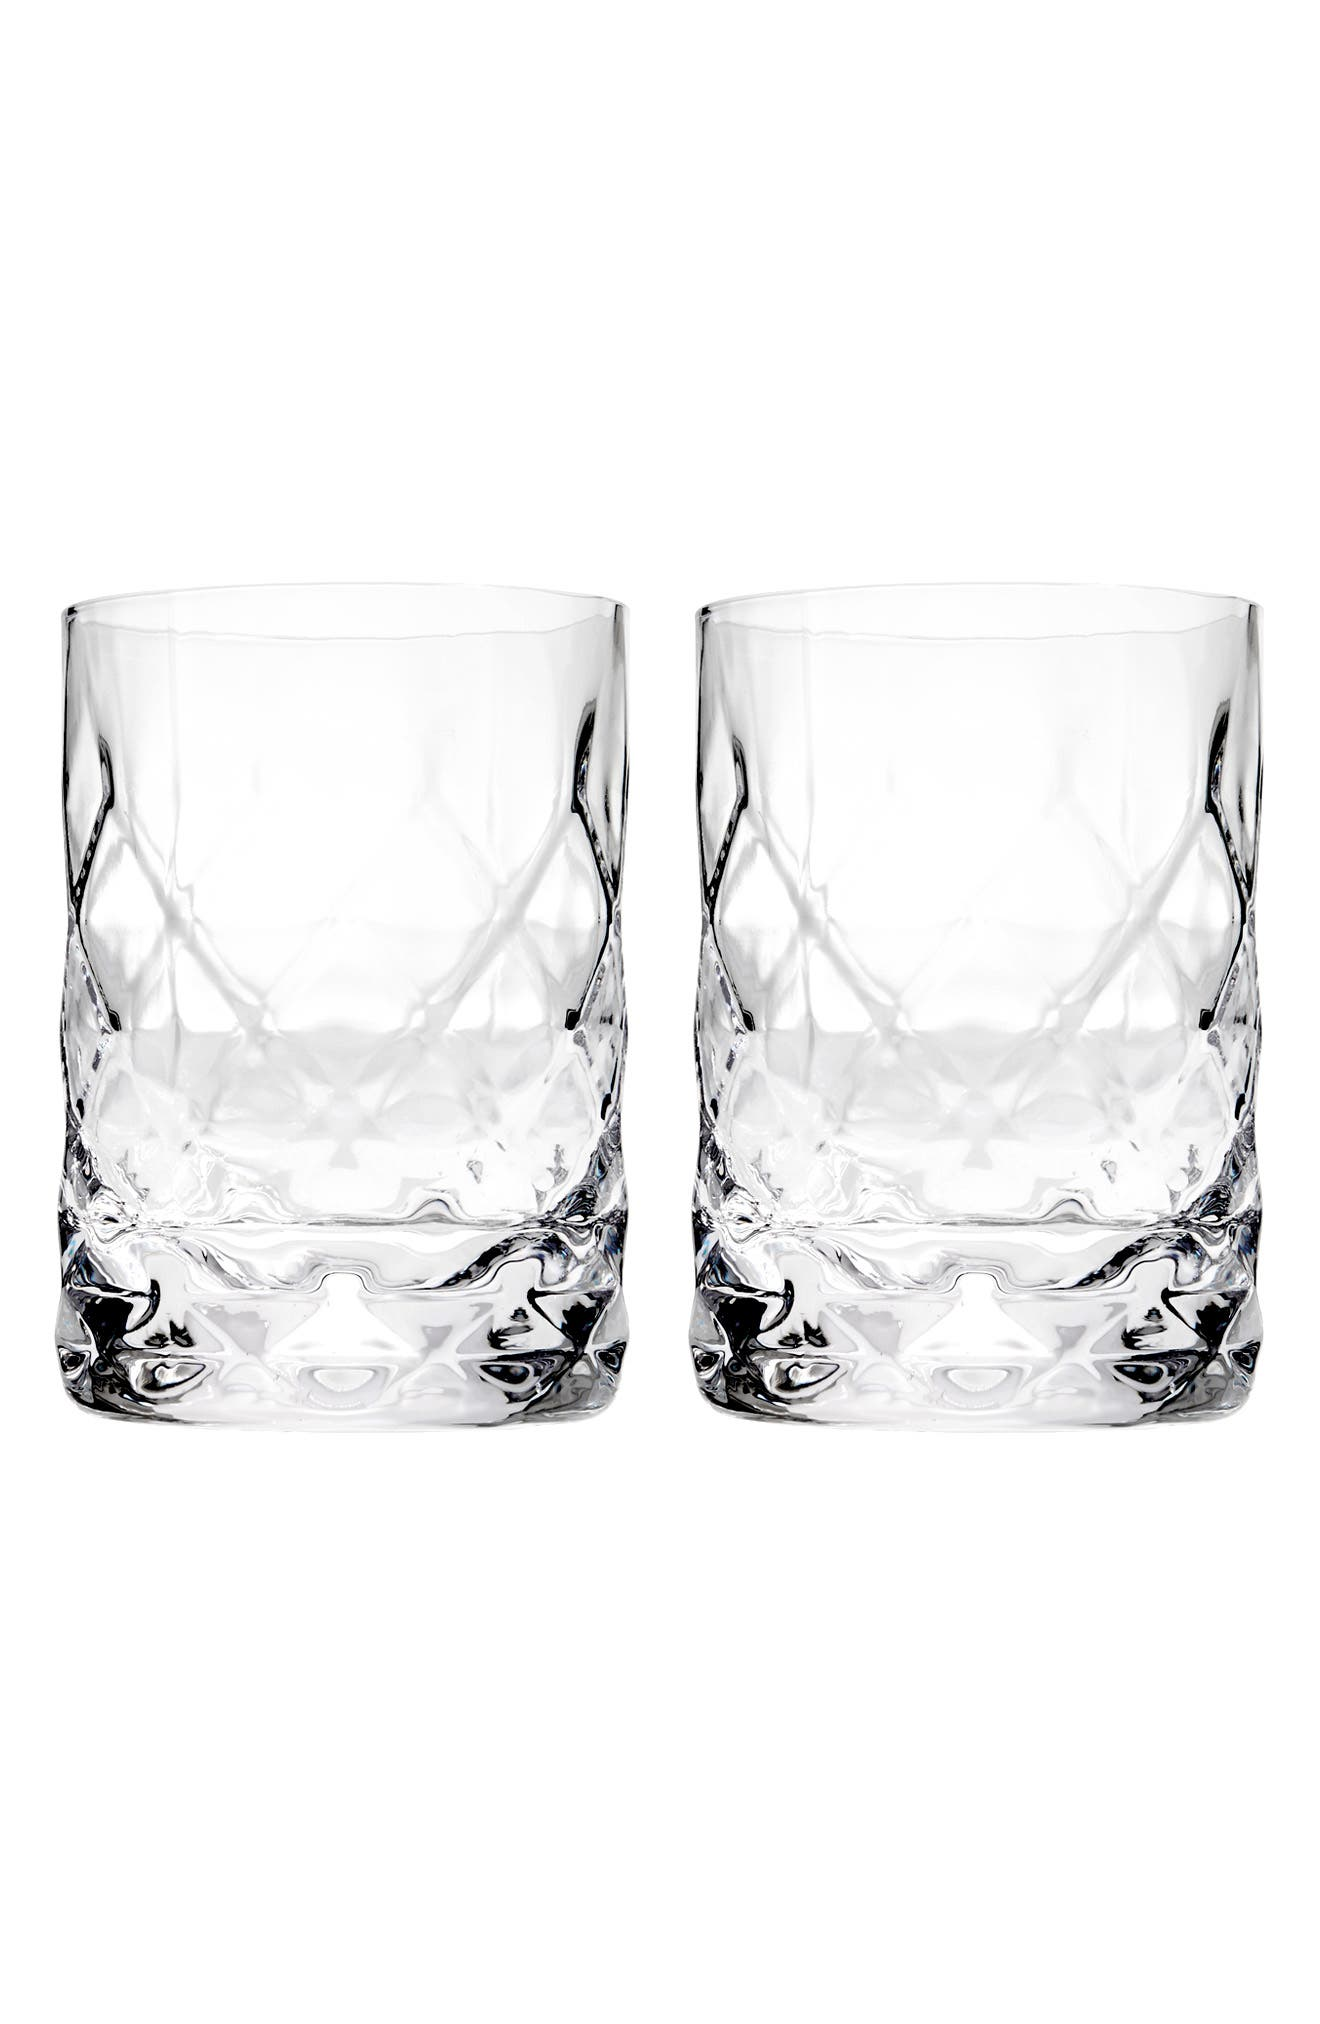 Main Image - true fabrications Set of 2 Double Old Fashioned Glasses